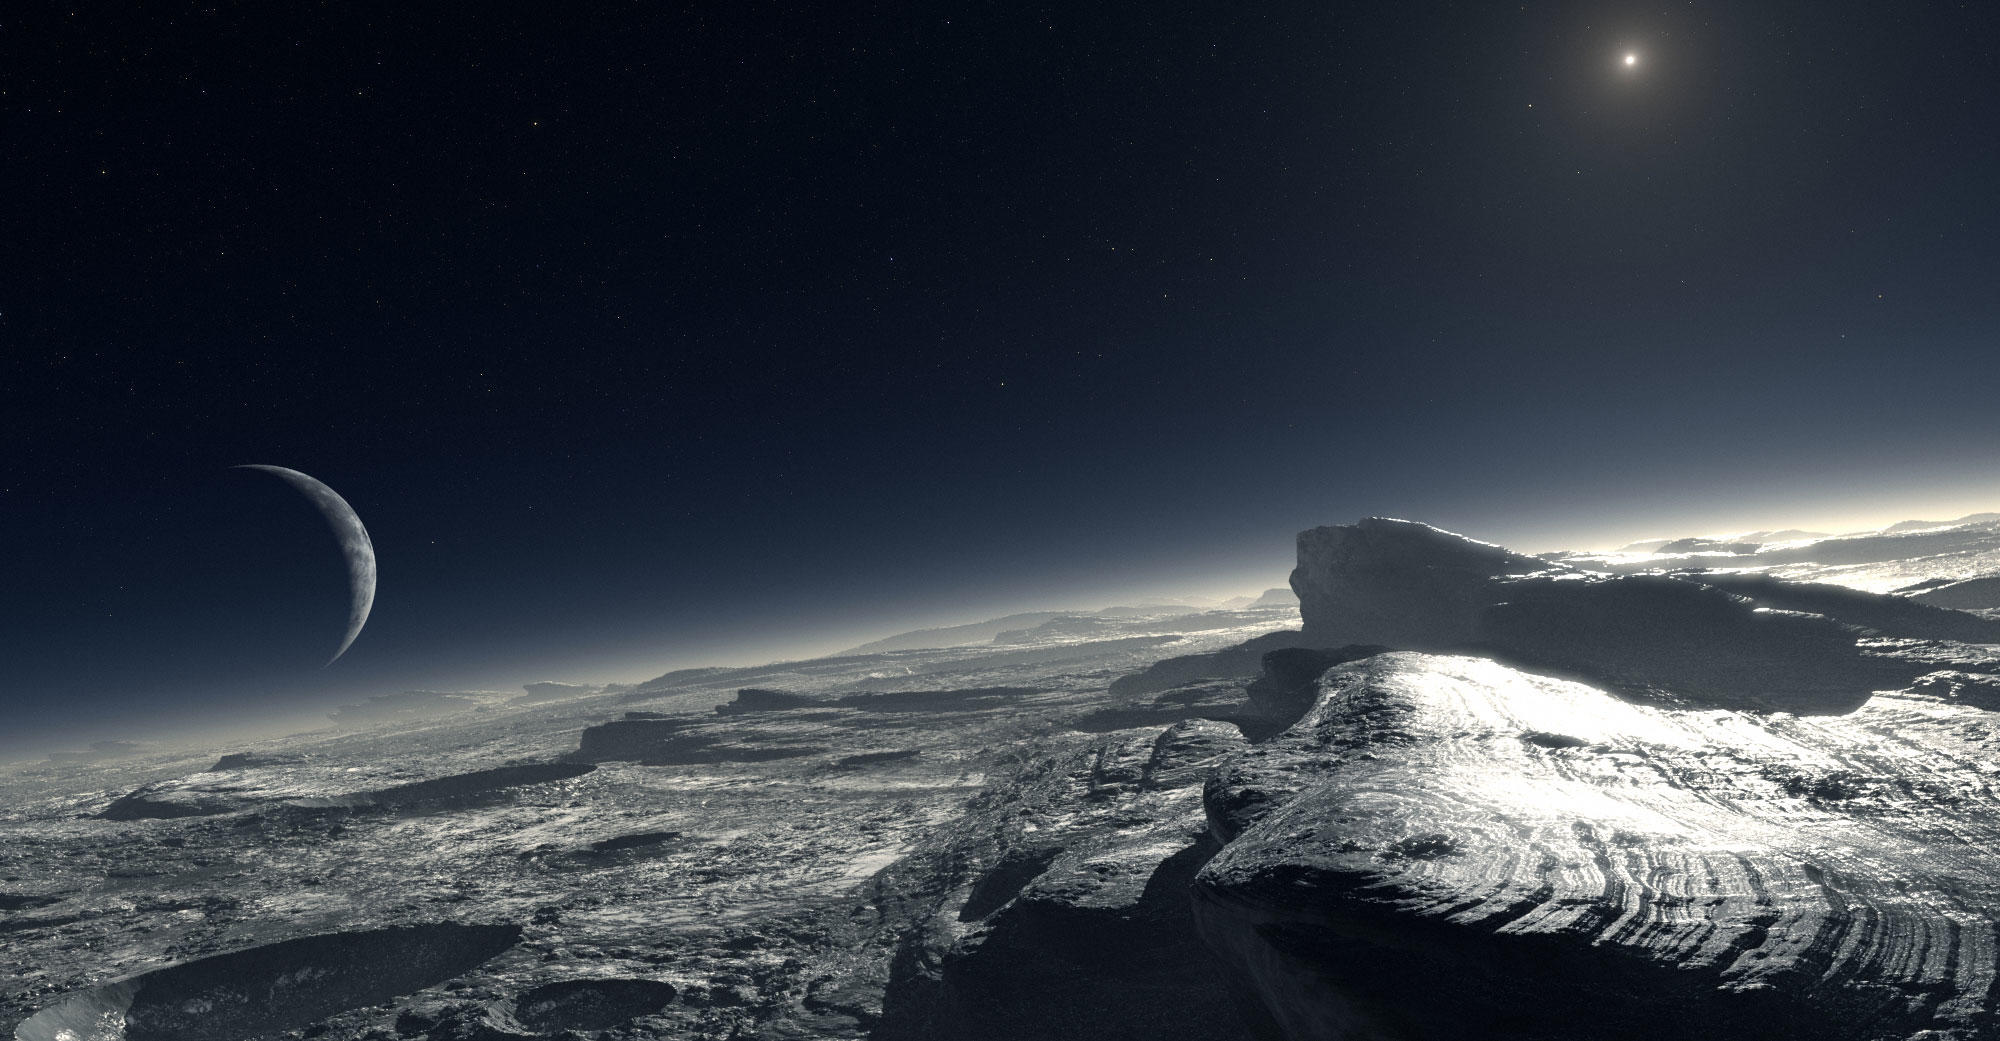 Artist impression of Pluto's surface